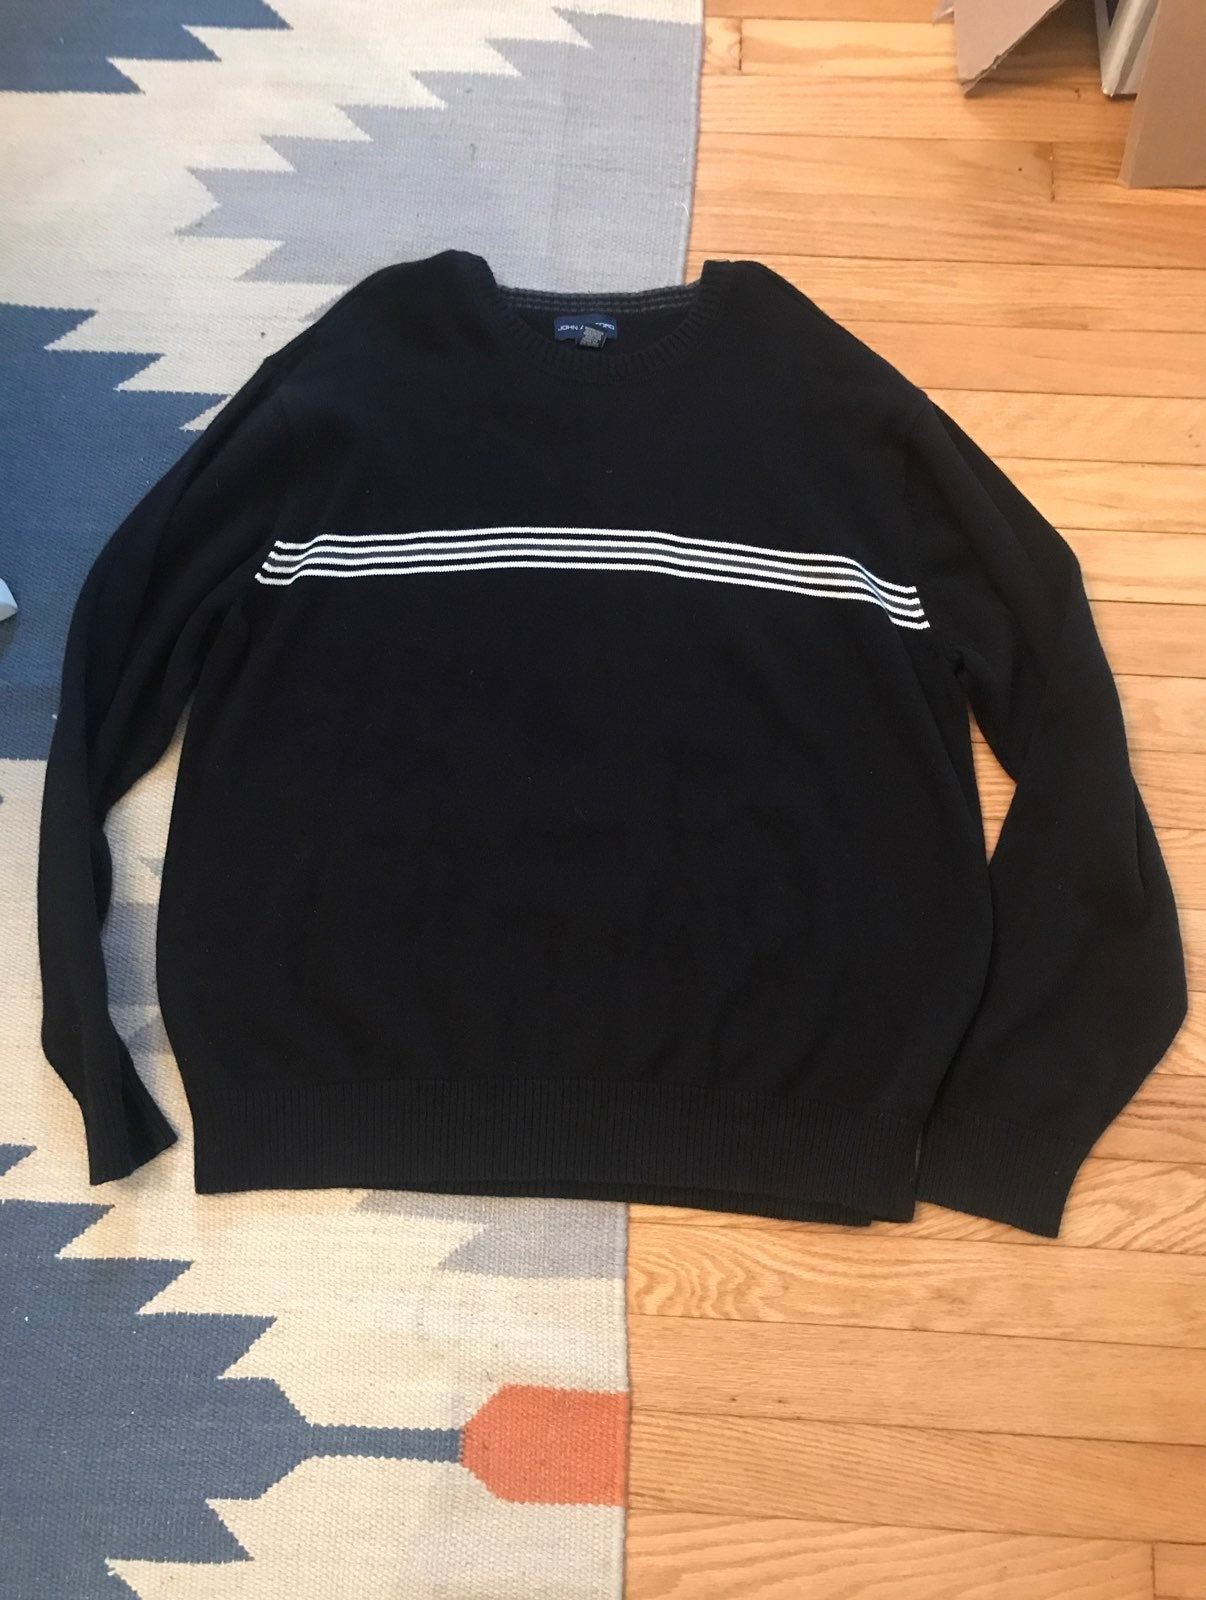 Men's XL sweater